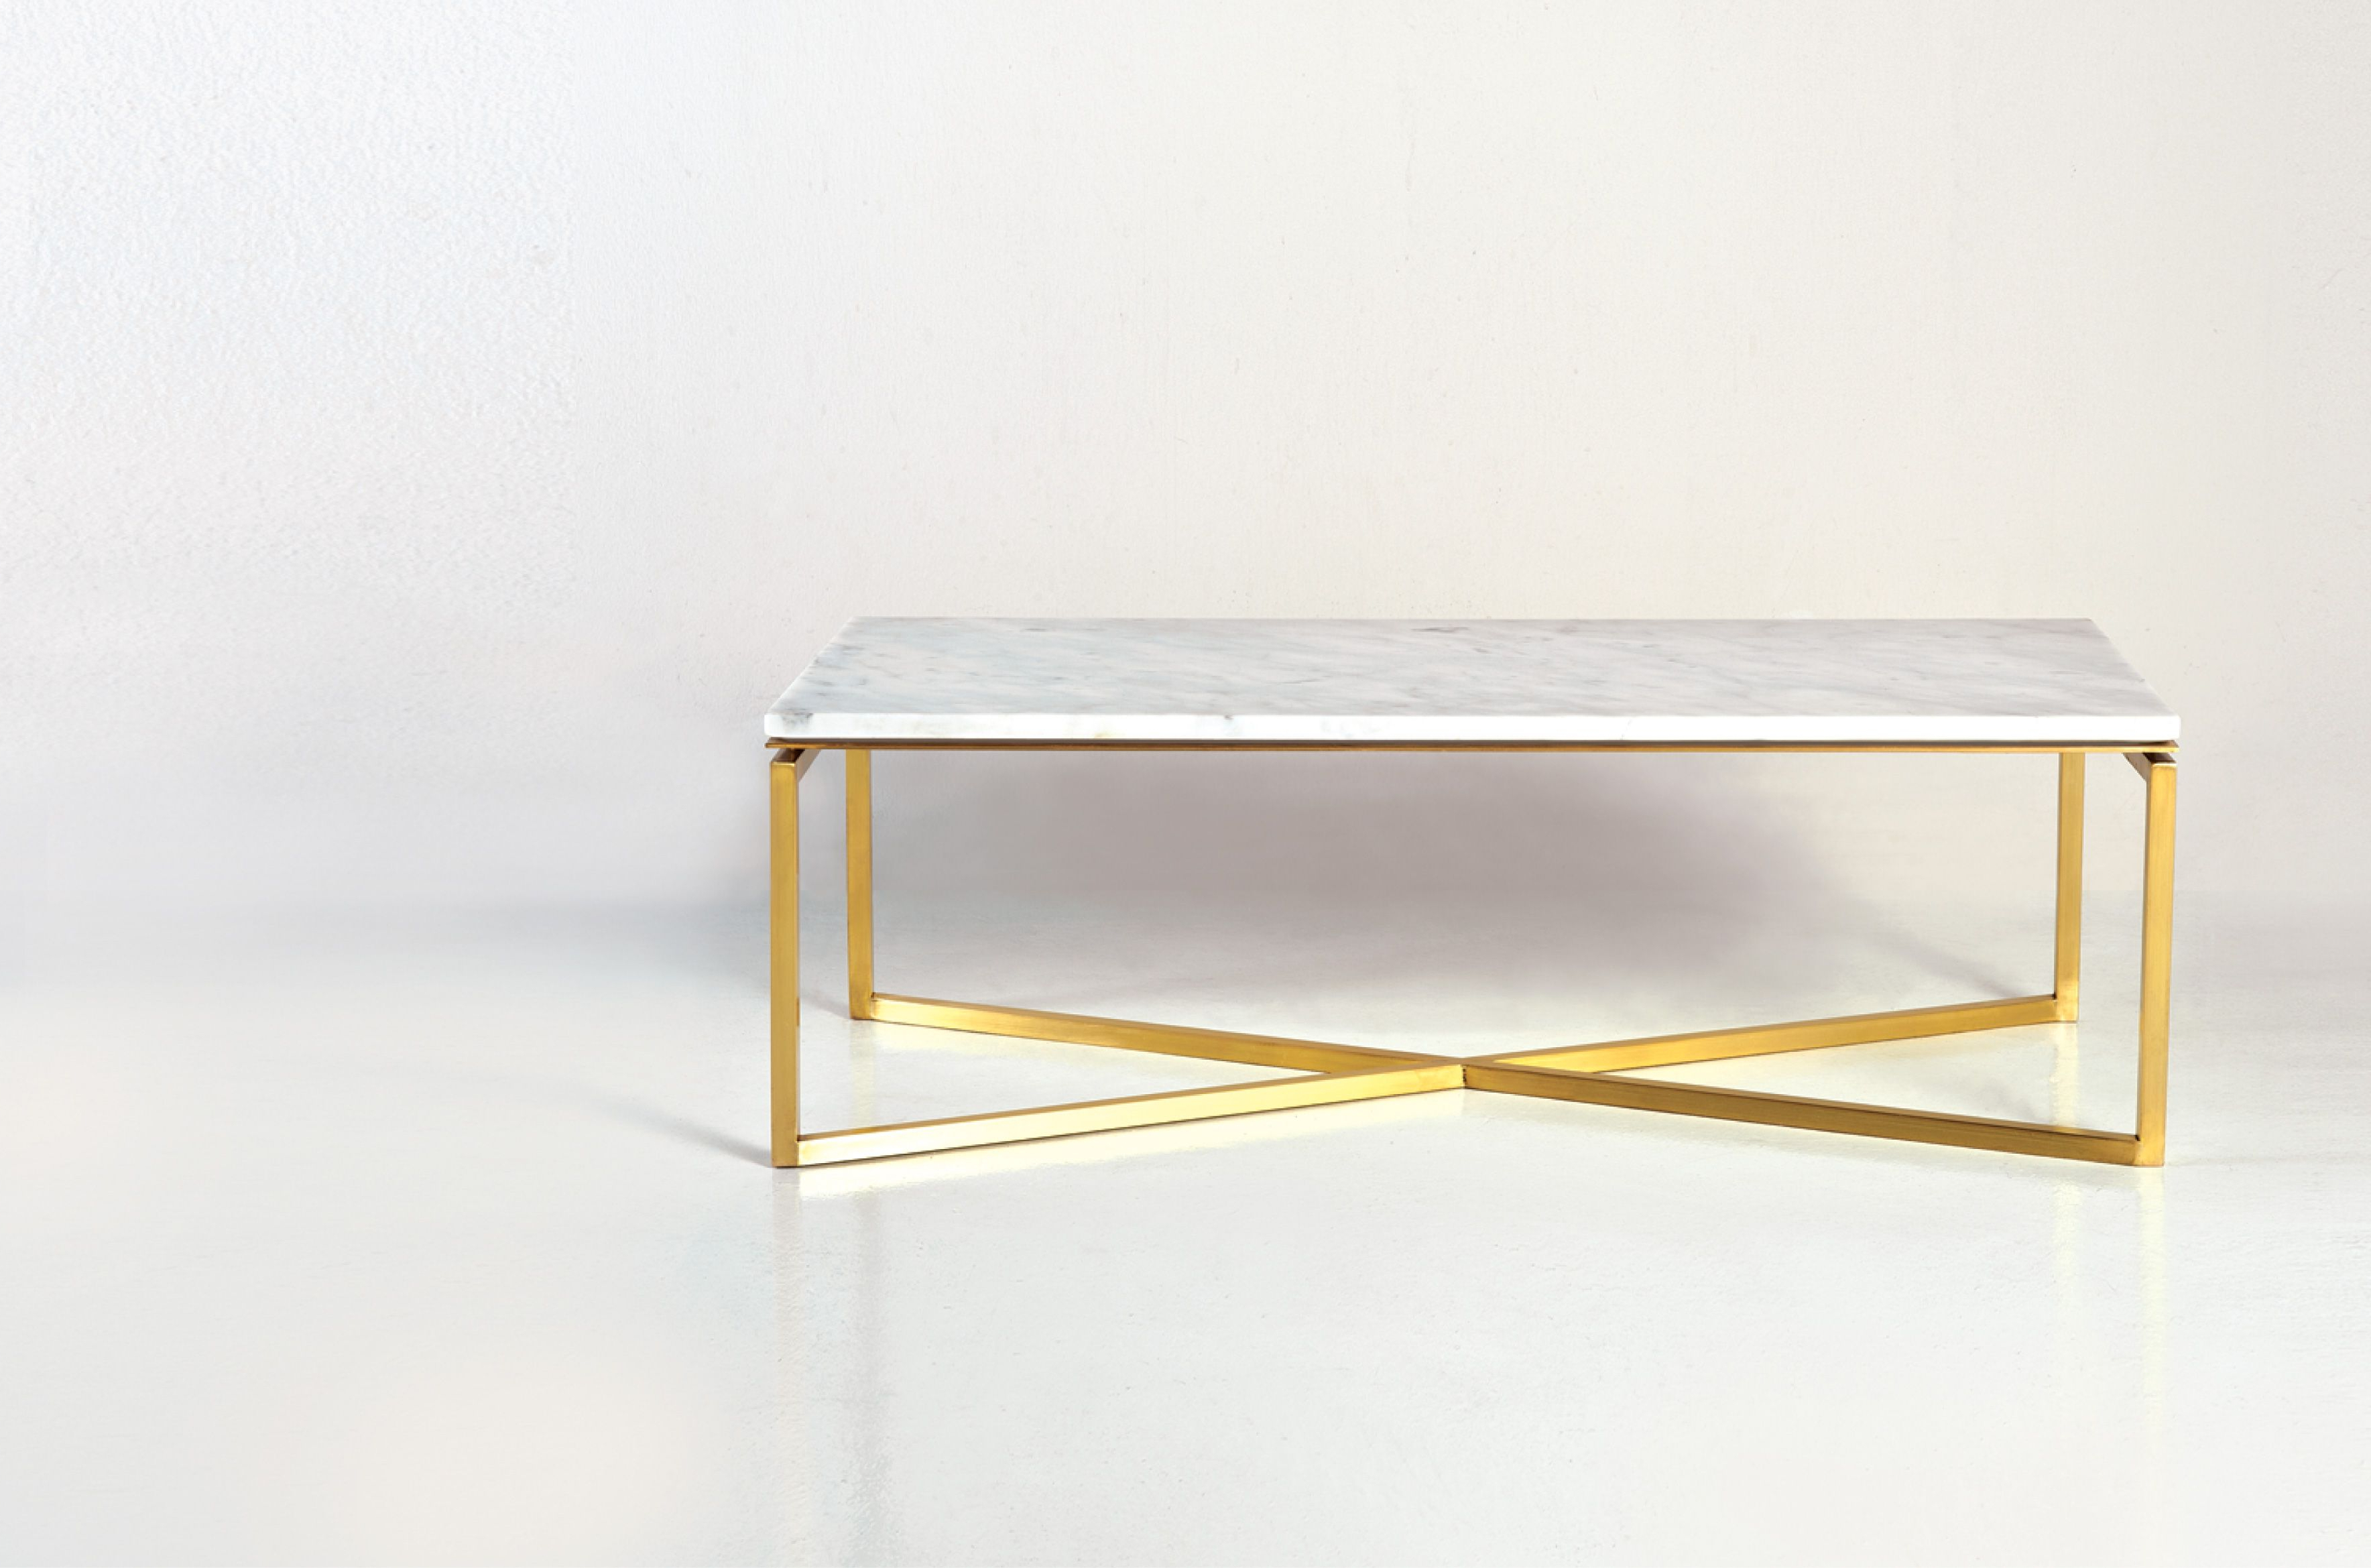 Baguette, Coffee Table. Brass Leg In Gold Finish And White Carrara Regarding Newest Rectangular Coffee Tables With Brass Legs (Gallery 2 of 20)